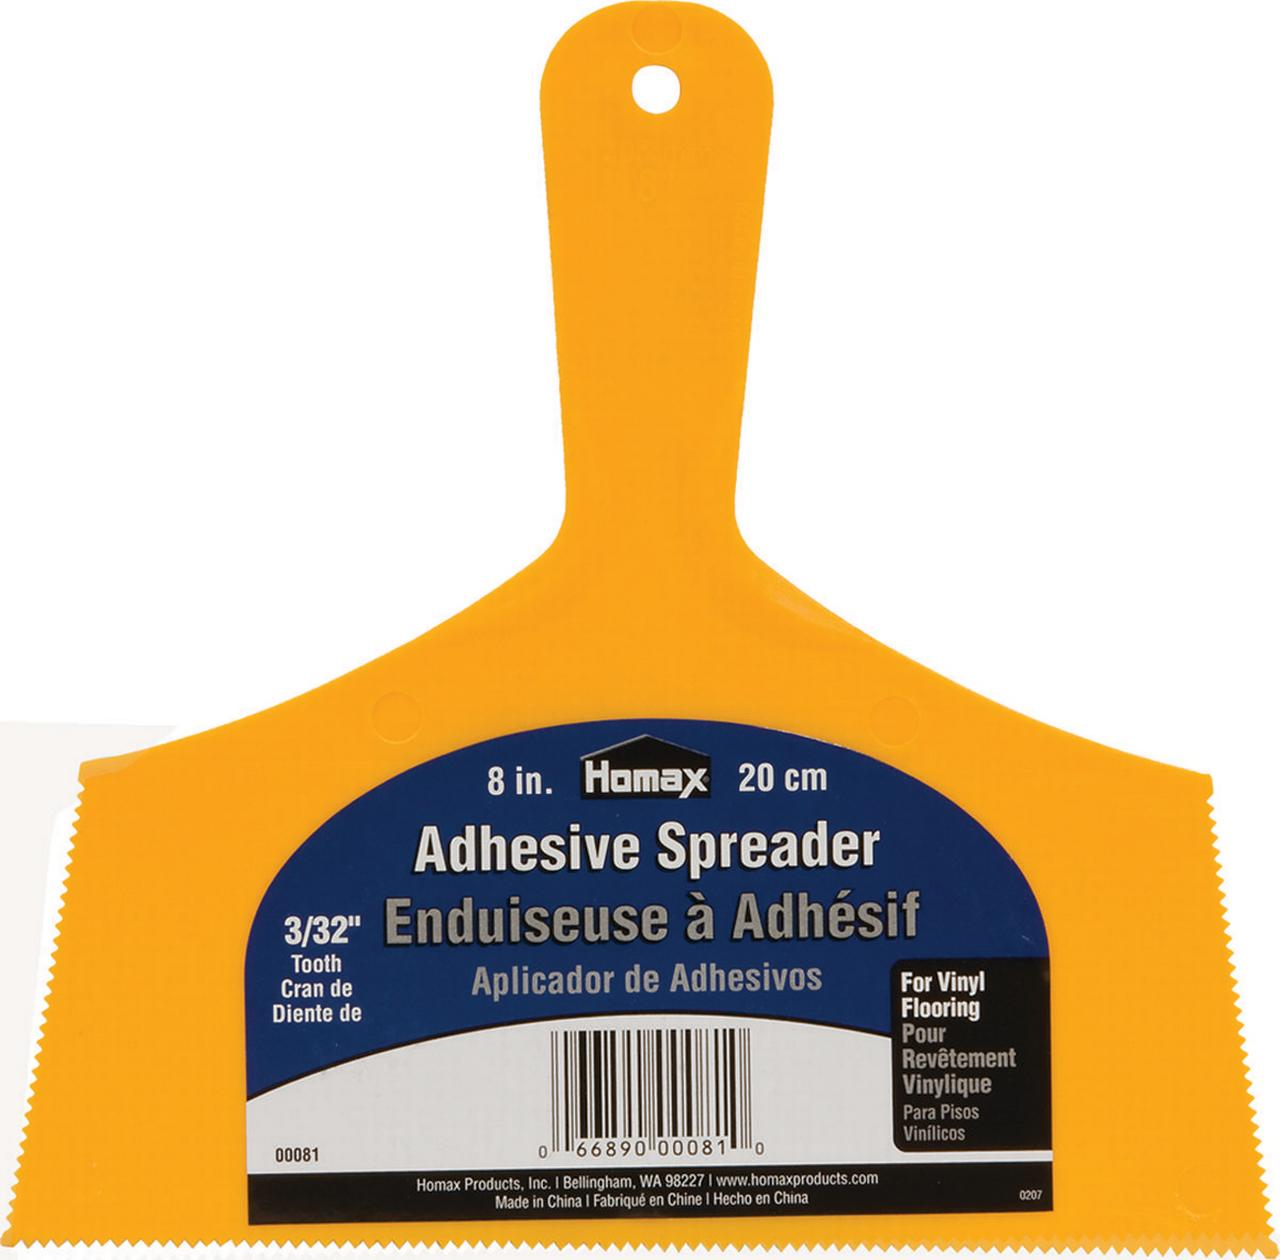 "Homax  Adhesive Spreader, 8 inch. 3/32"" Tooth"